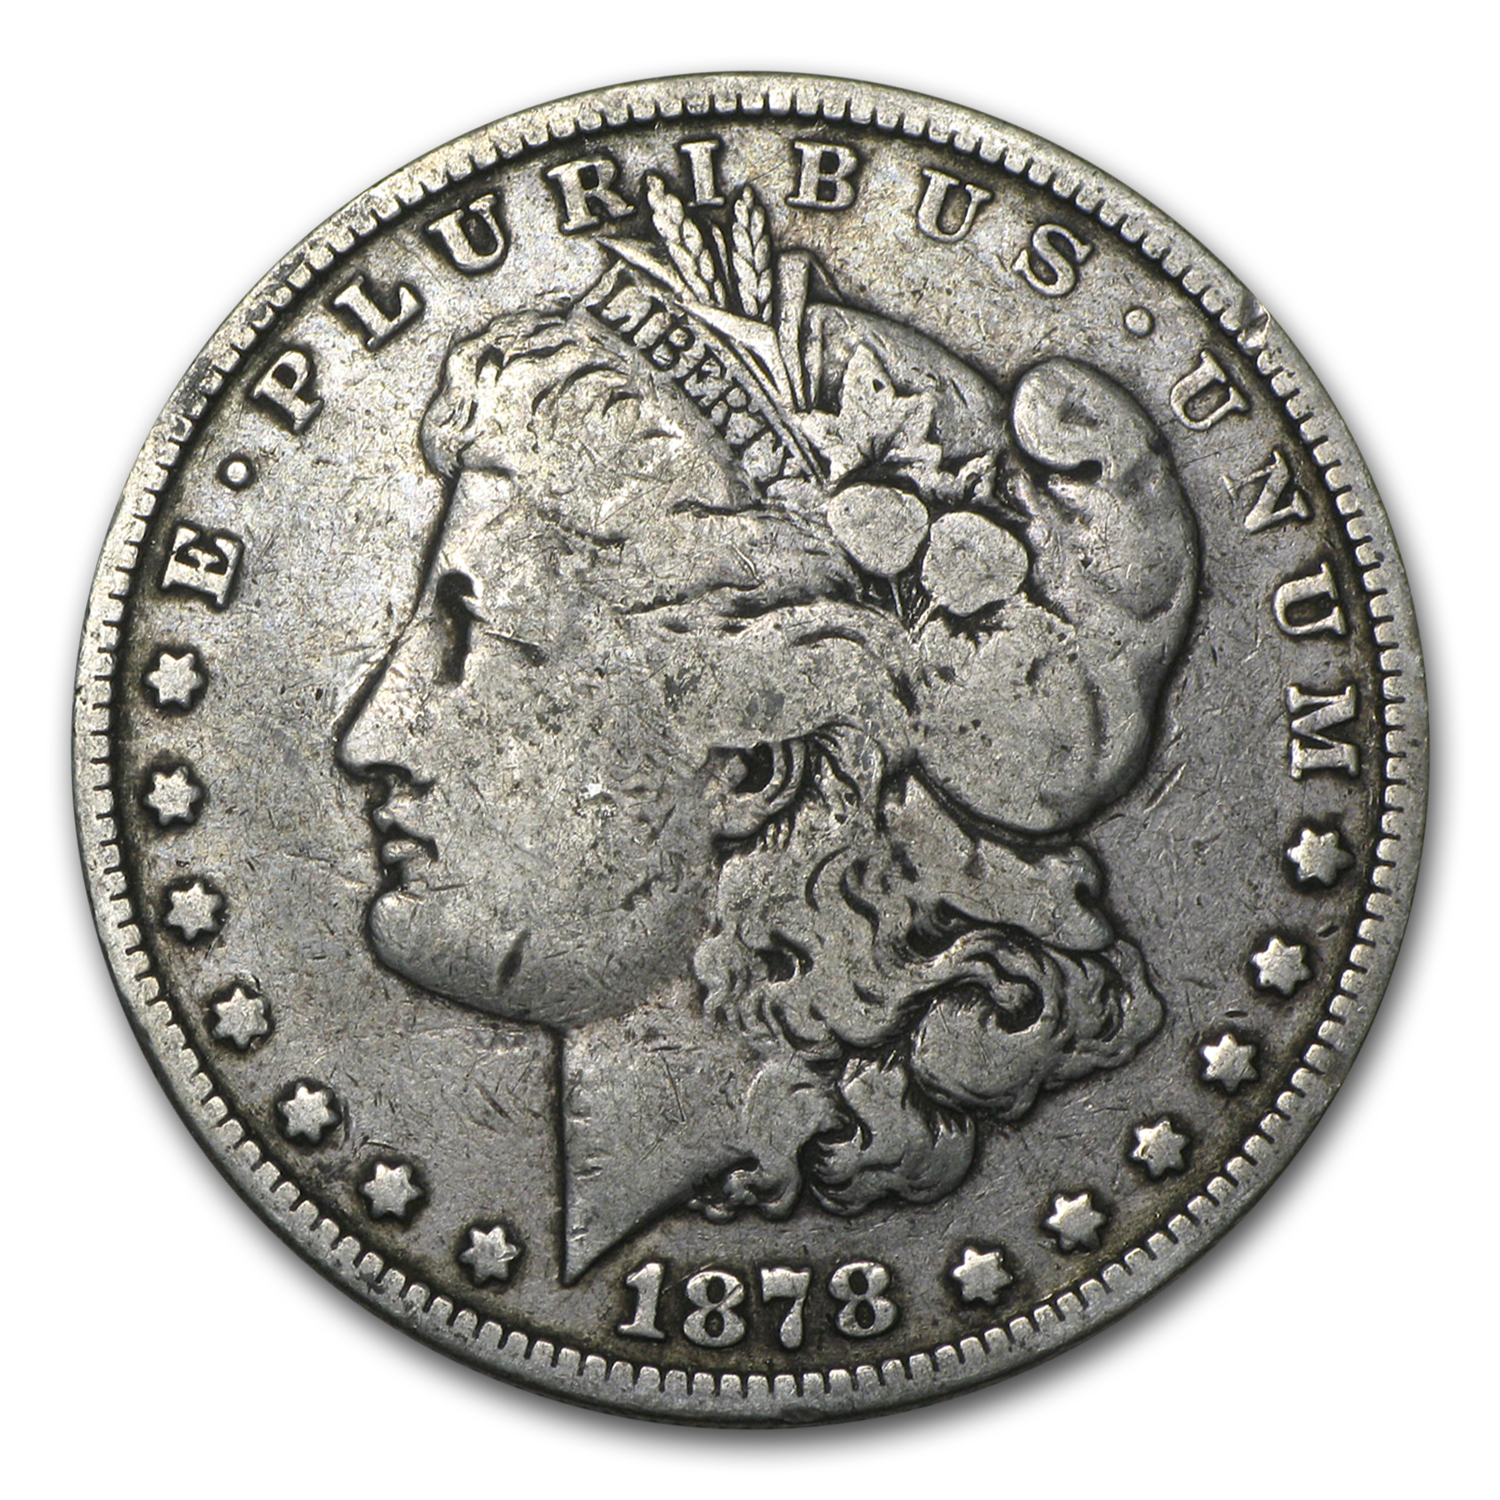 1878 Morgan Dollar 8 Tailfeathers VG/VF